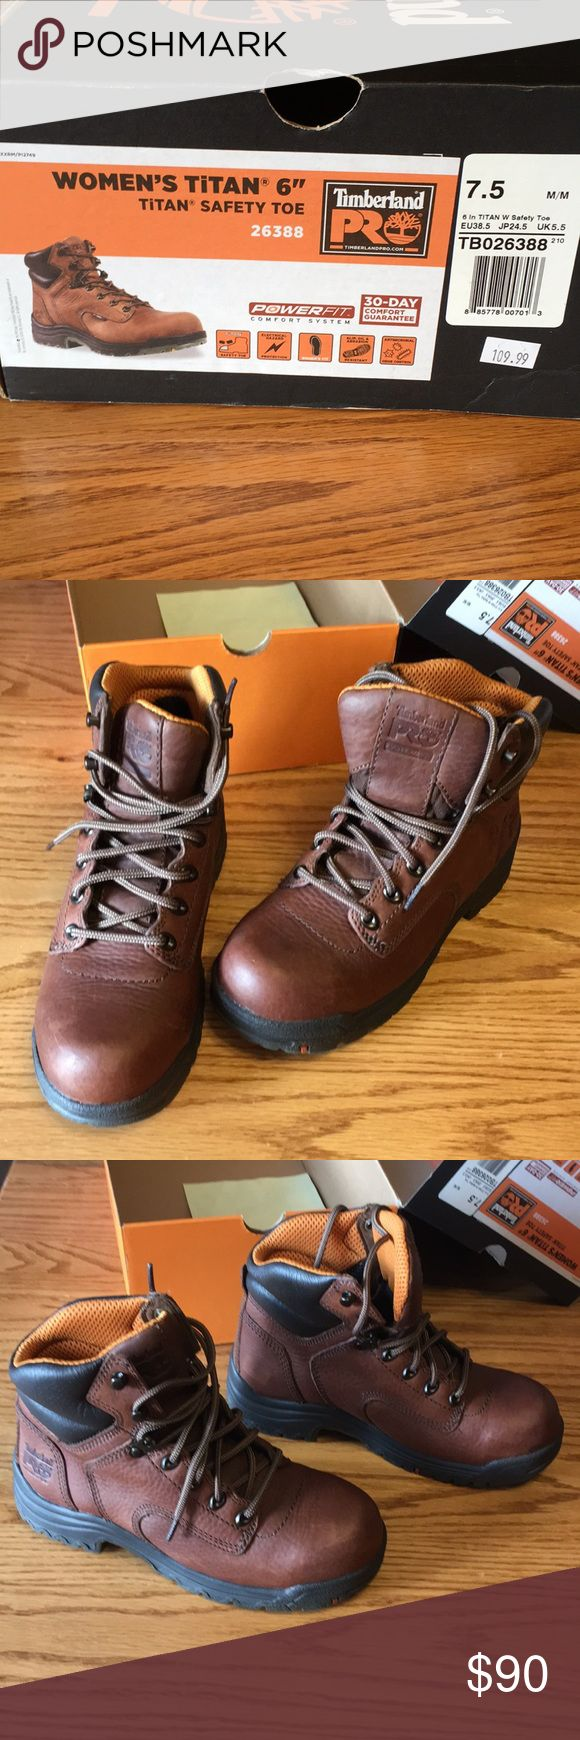 """Timberland Pro Titan 6"""" Safety Toe Boots Like New. Style # 26388 $109 new. Titan safety toe. Composite toe. Electrical hazard protection. Slip, oil & abrasion resistant.  Antimicrobial odor control. Wore one time for less than 30 minutes in a food manufacturing facility (aka-clean floors!).  Make offer. Women's 7.5 runs true to size. Very comfortable. Timberland Shoes"""